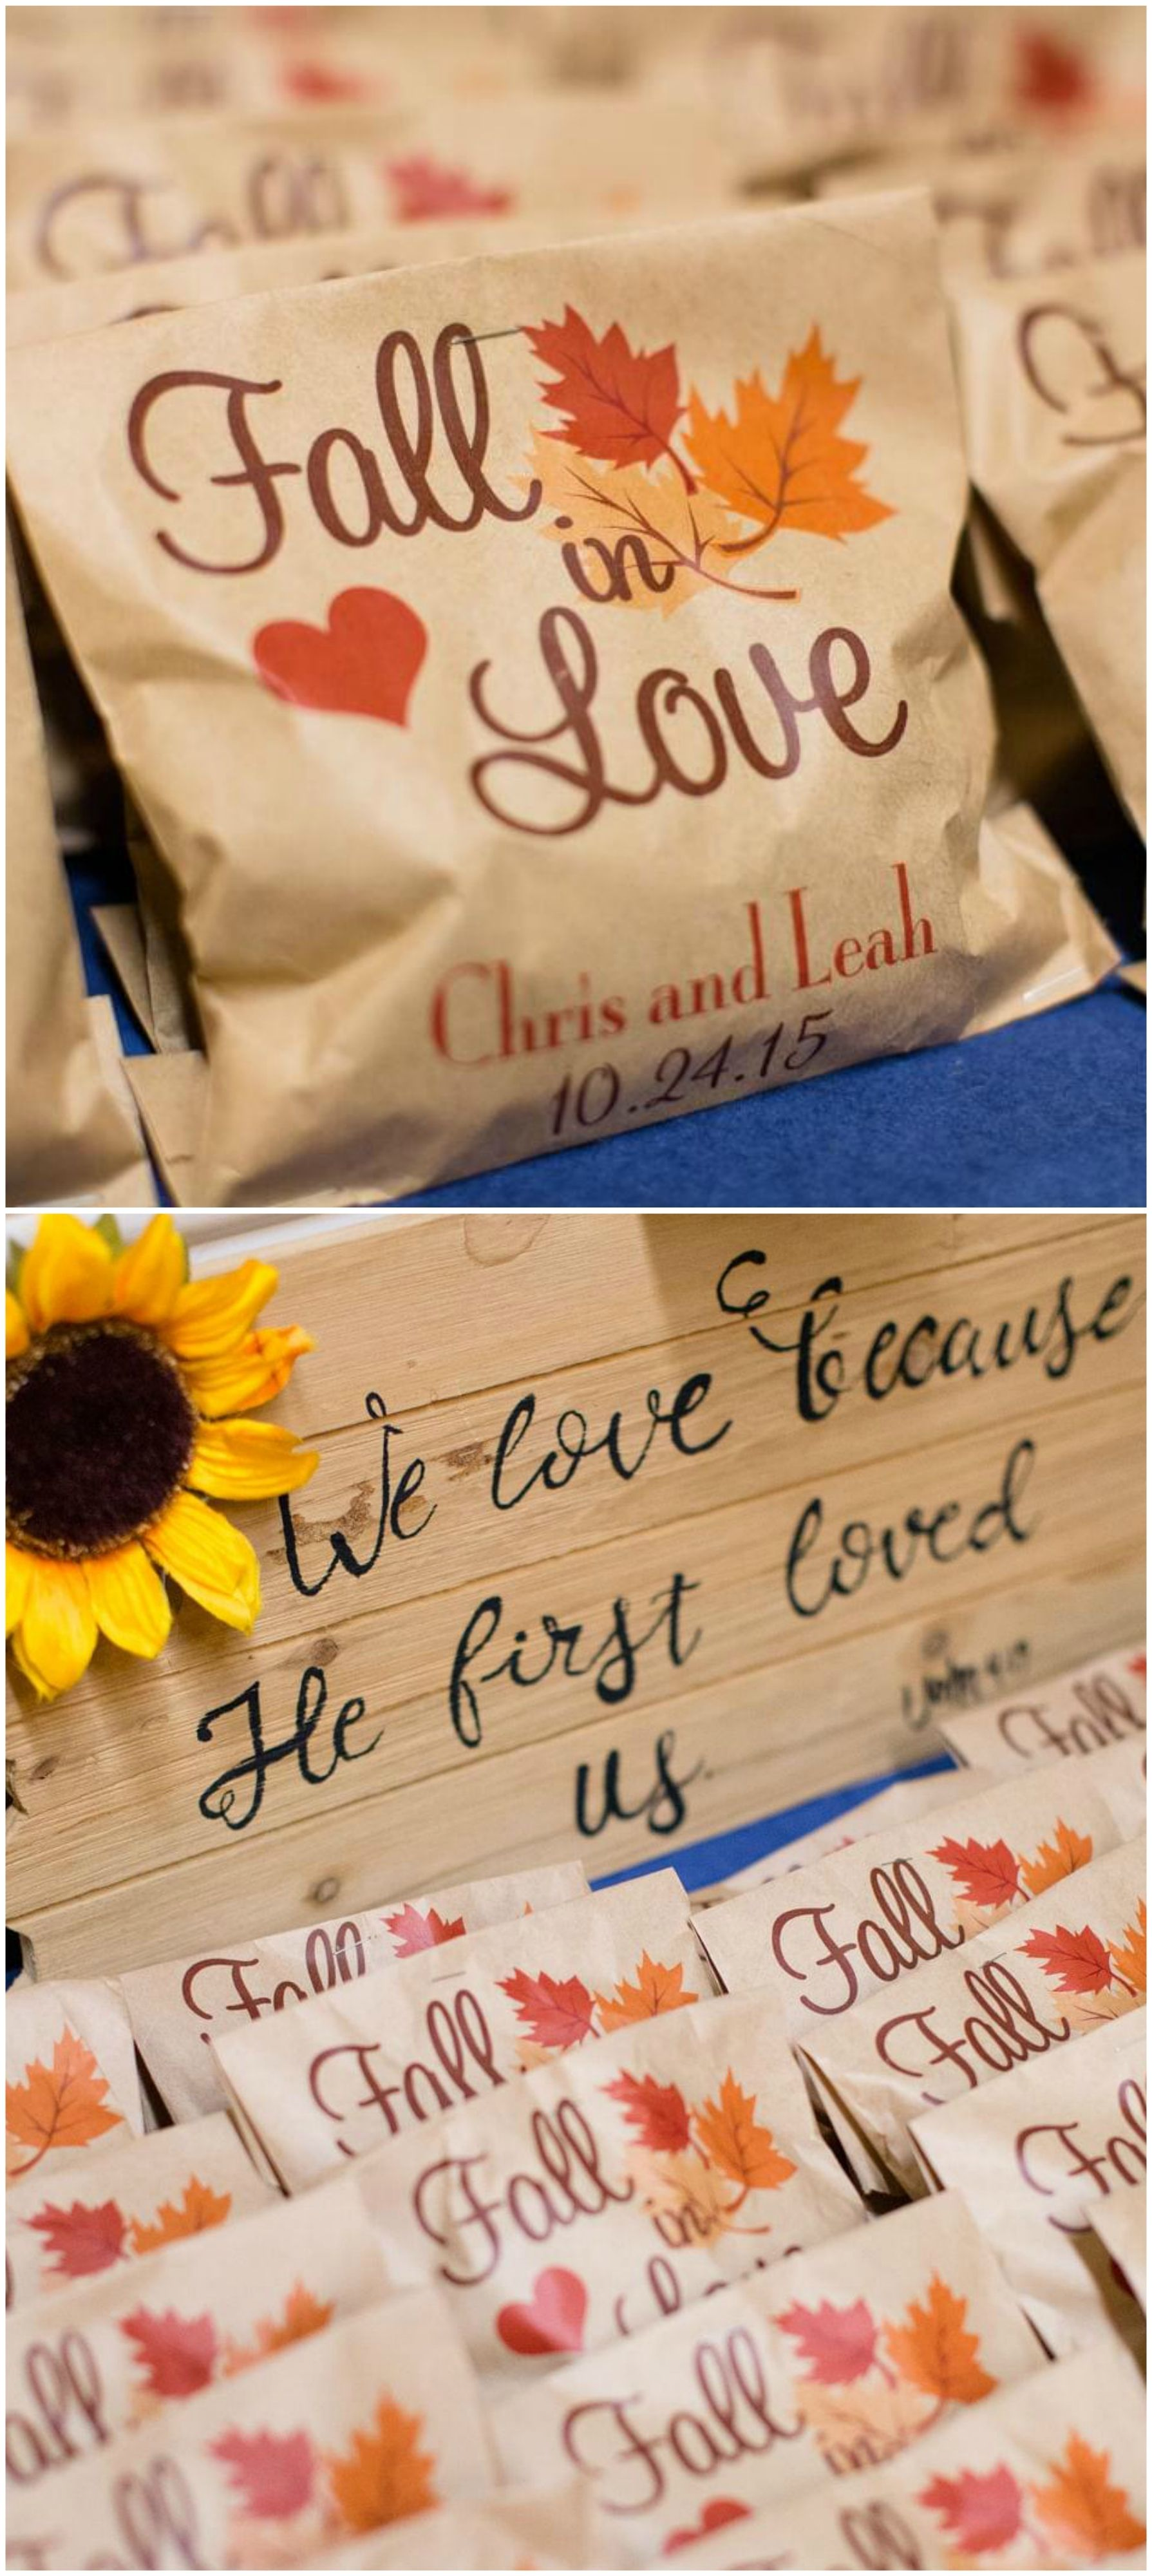 Fall Wedding Favors | Wedding Favors Sunflowers Fall In Love Christian Wedding Rustic